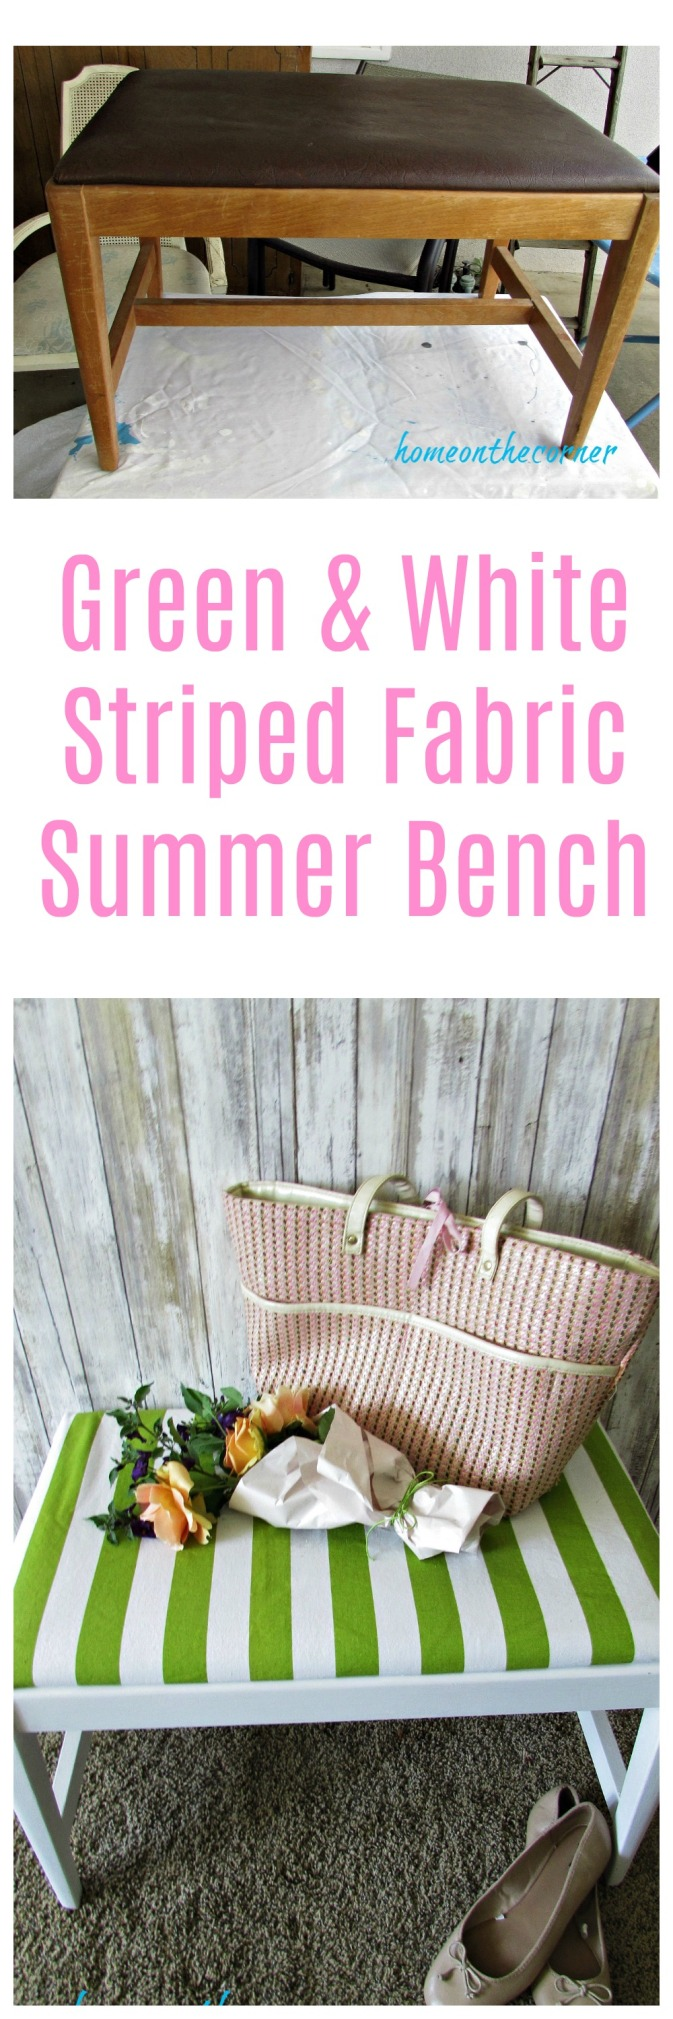 Green and White striped bench Title